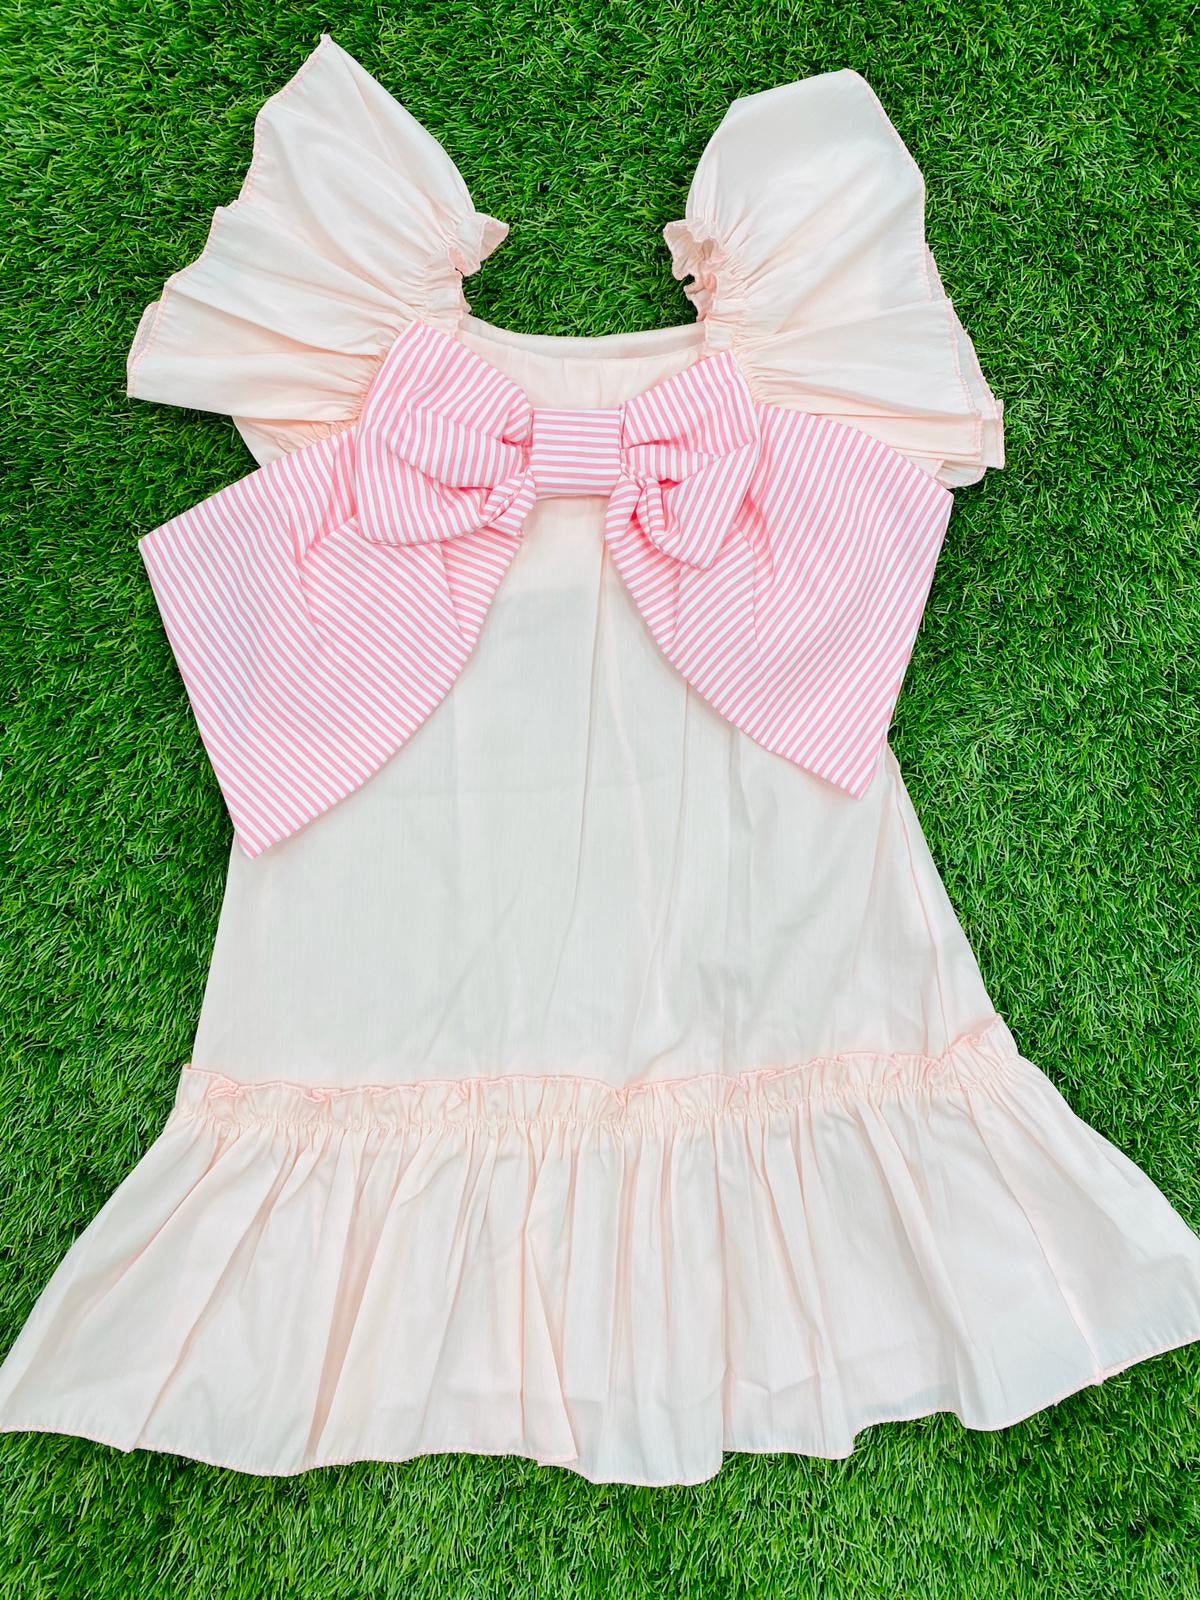 Ruffle Bow Dress Pink